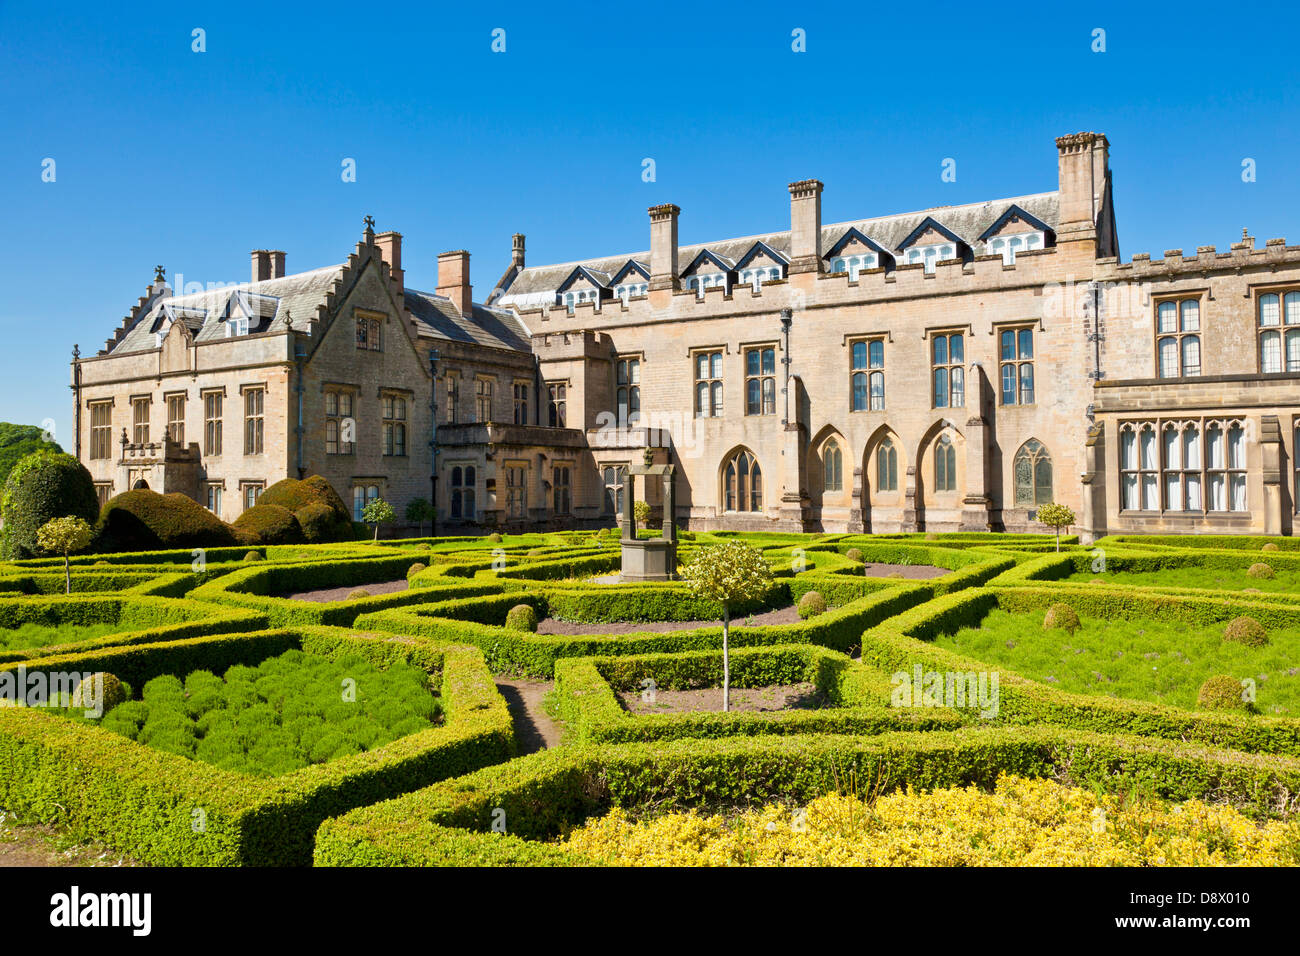 Newstead Abbey Historic House and gardens Ravenshead Newstead Nottinghamshire England UK GB EU Europe - Stock Image